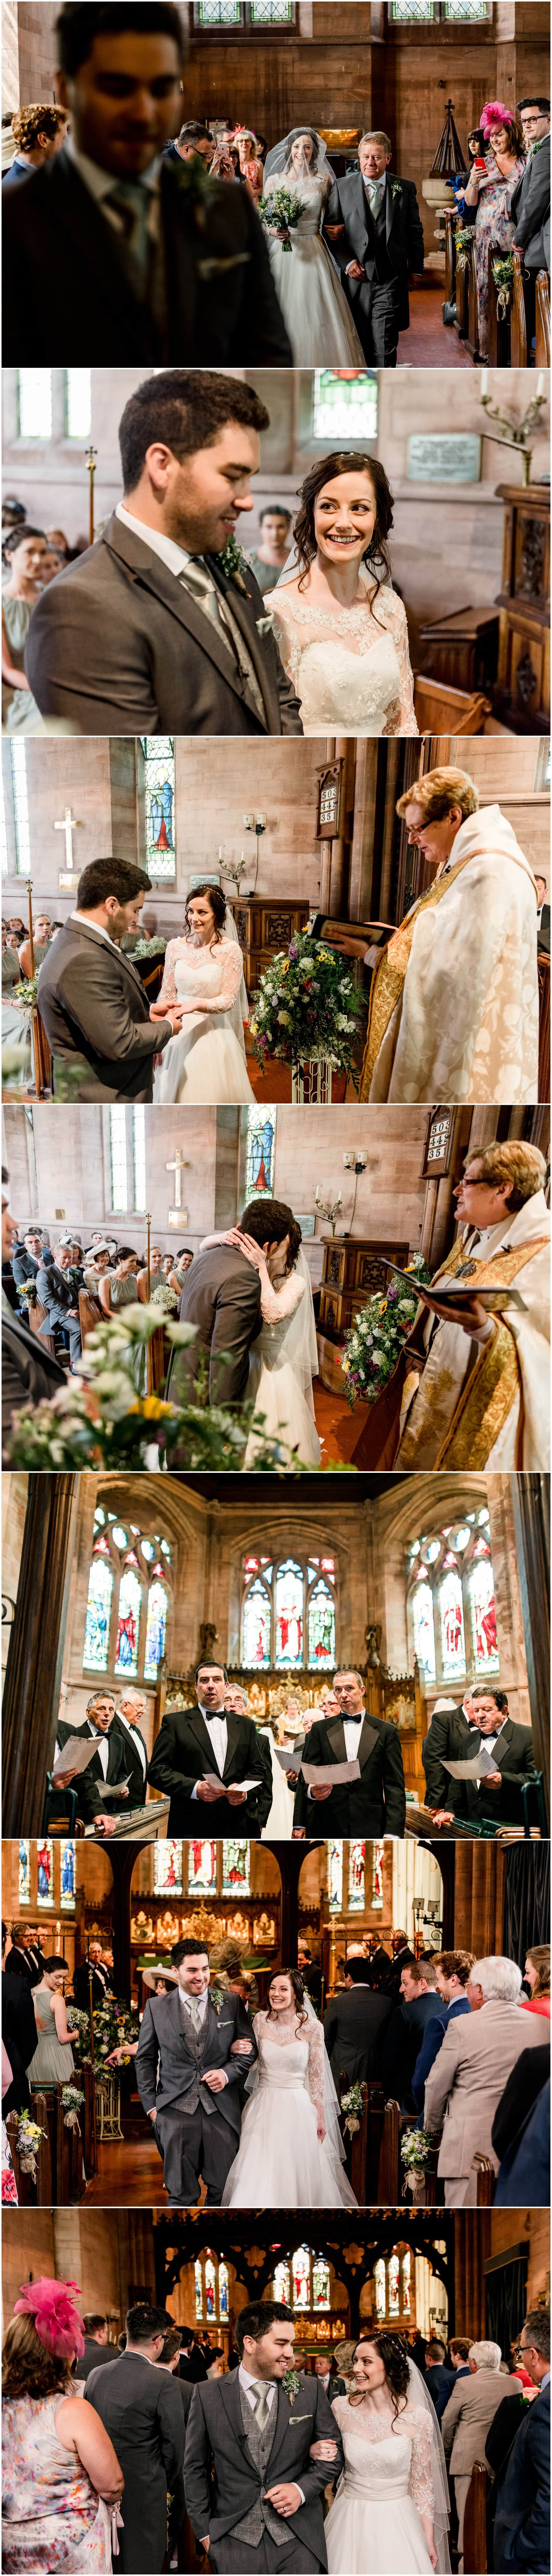 Ffion and Hefin's beautiful, elegant summer wedding at Ten Dwr Hall in Llangollen, Wales with wild flowers and sage colours by West Midlands and Wales Wedding photographer Lisa Carpenter Photography, specialising in cool, contemporary wedding photos. Brides arrival at church. Rhos Male Voice Choir.